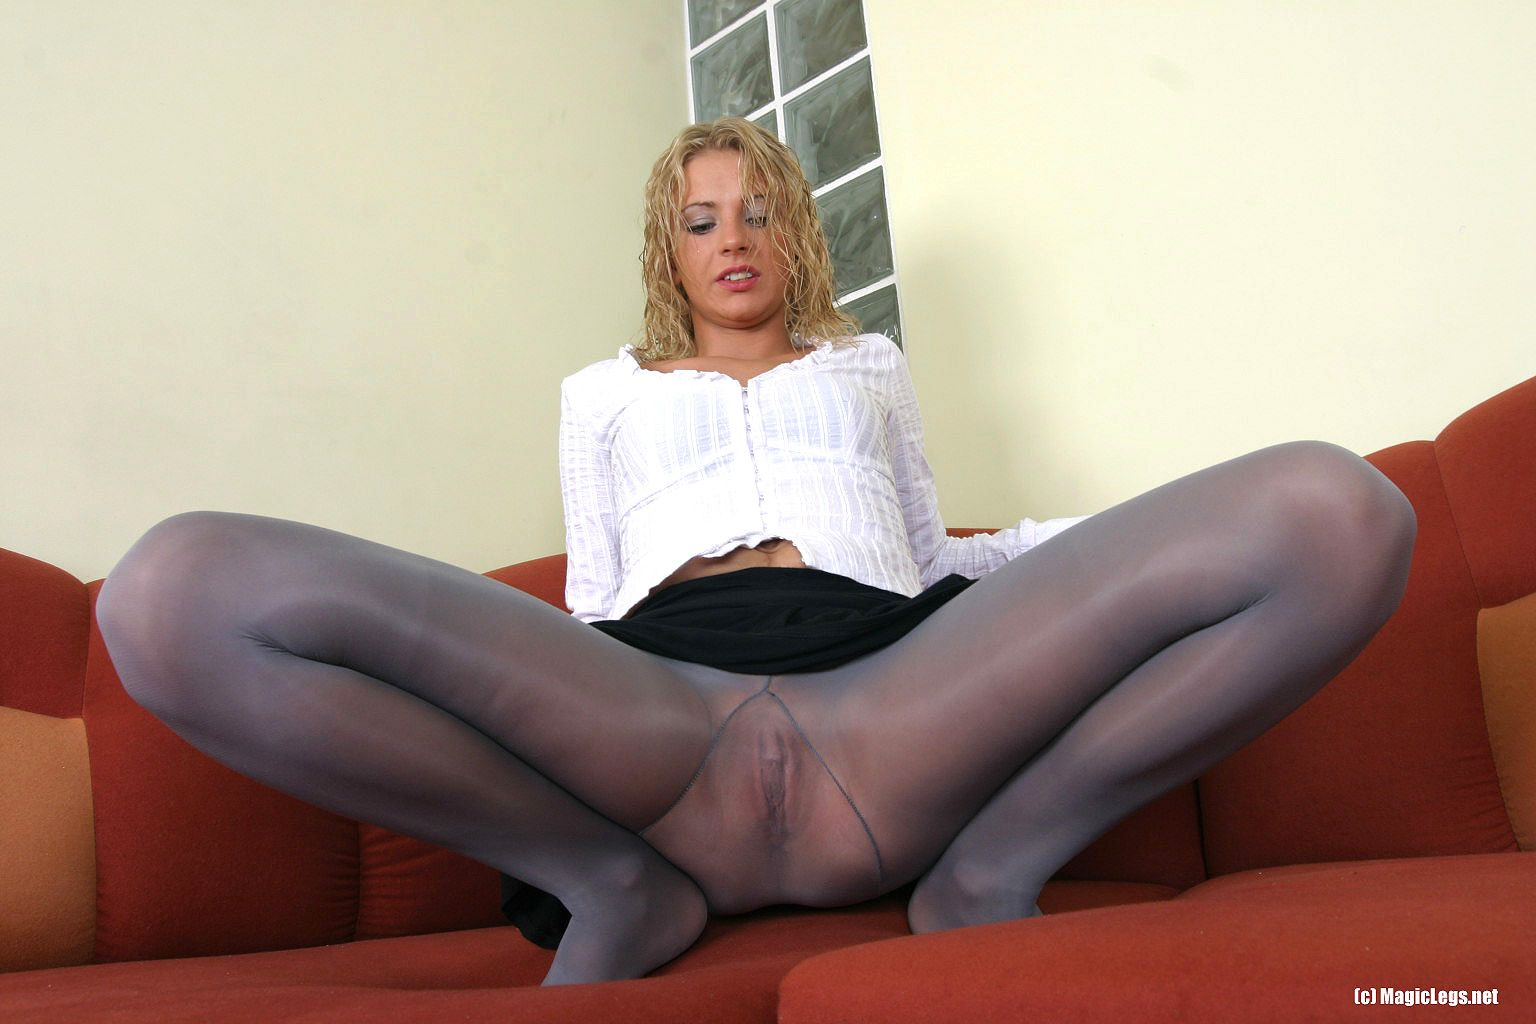 final, sorry, mature interracial anal sex pic absolutely useless. remarkable, rather